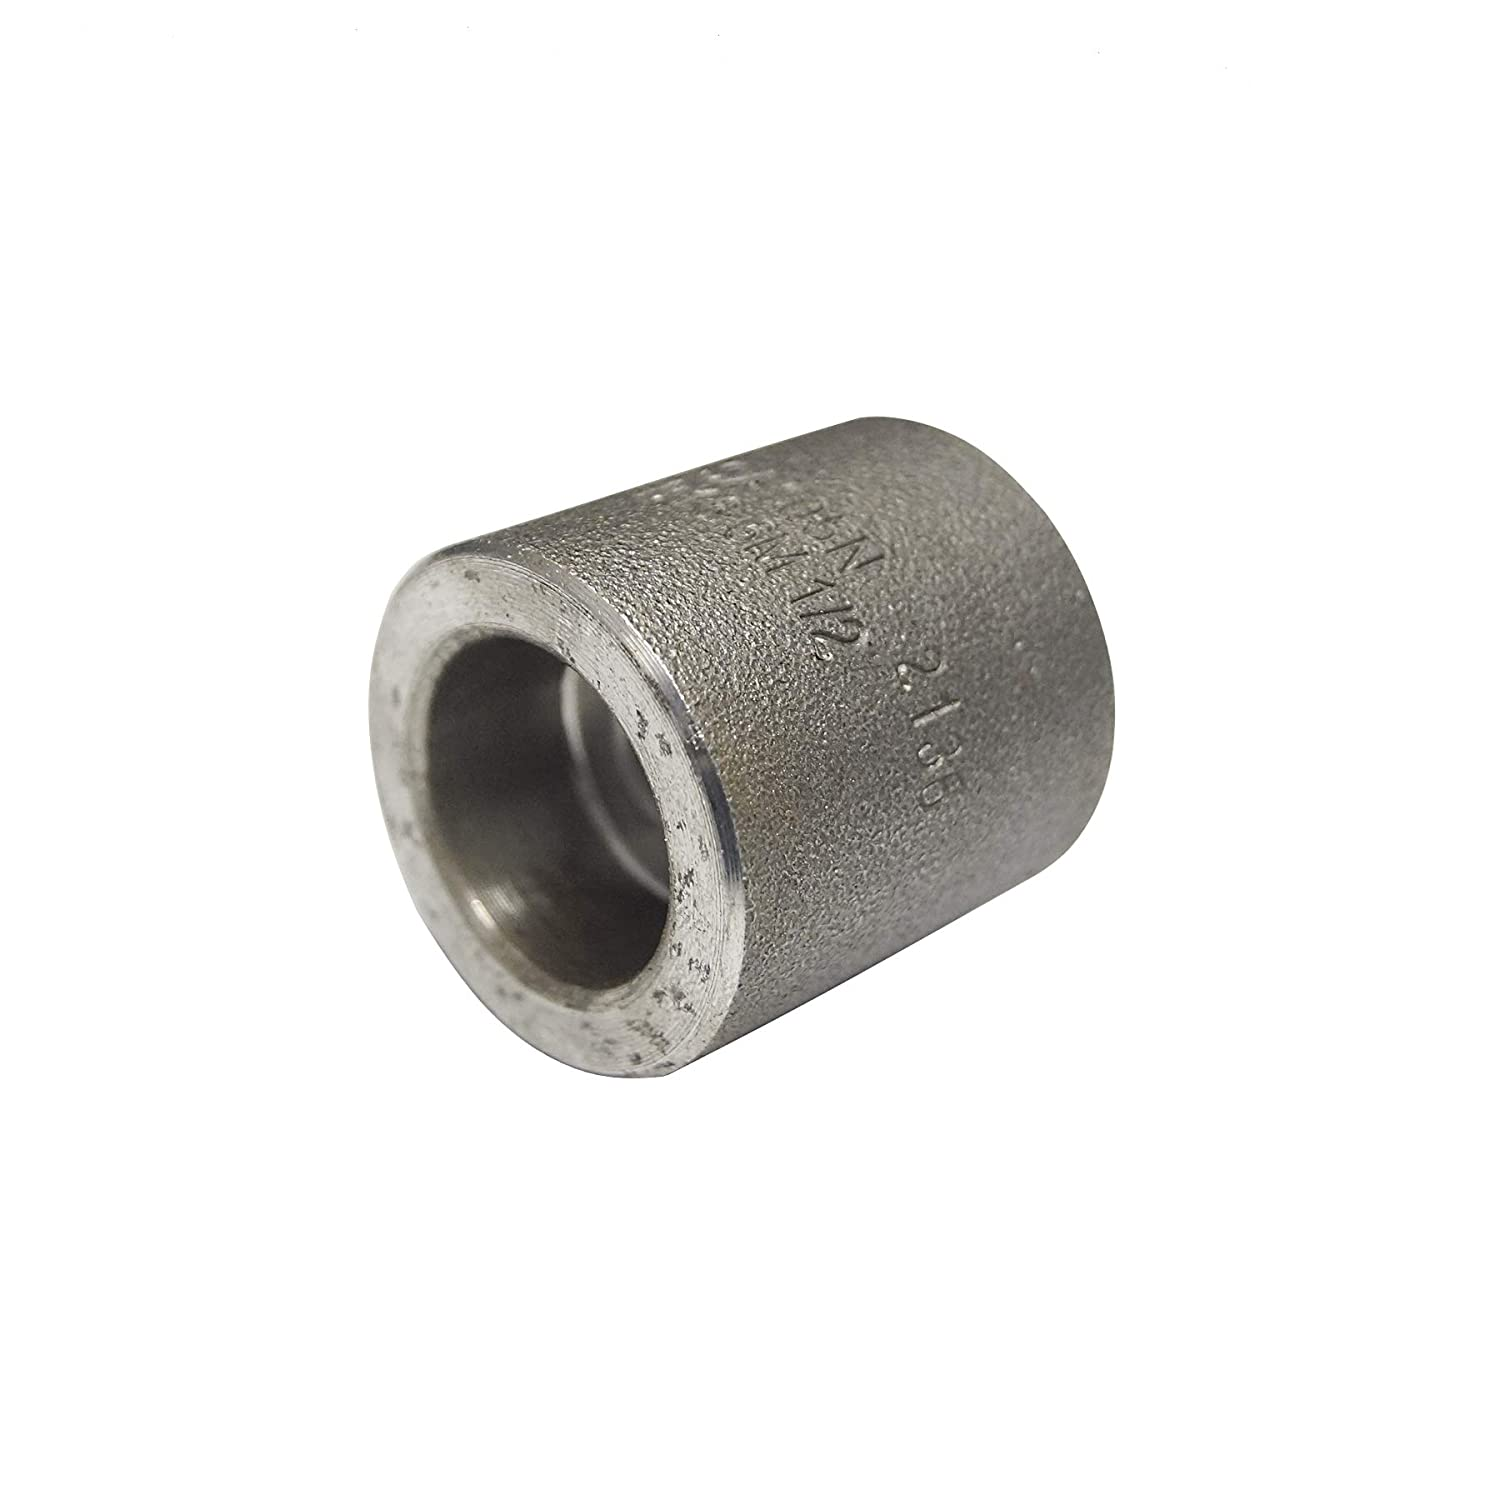 Carbon Phoenix Mall Steel A105 Forged Pipe Fitting Socke Ranking TOP6 Full 1 Coupling 2